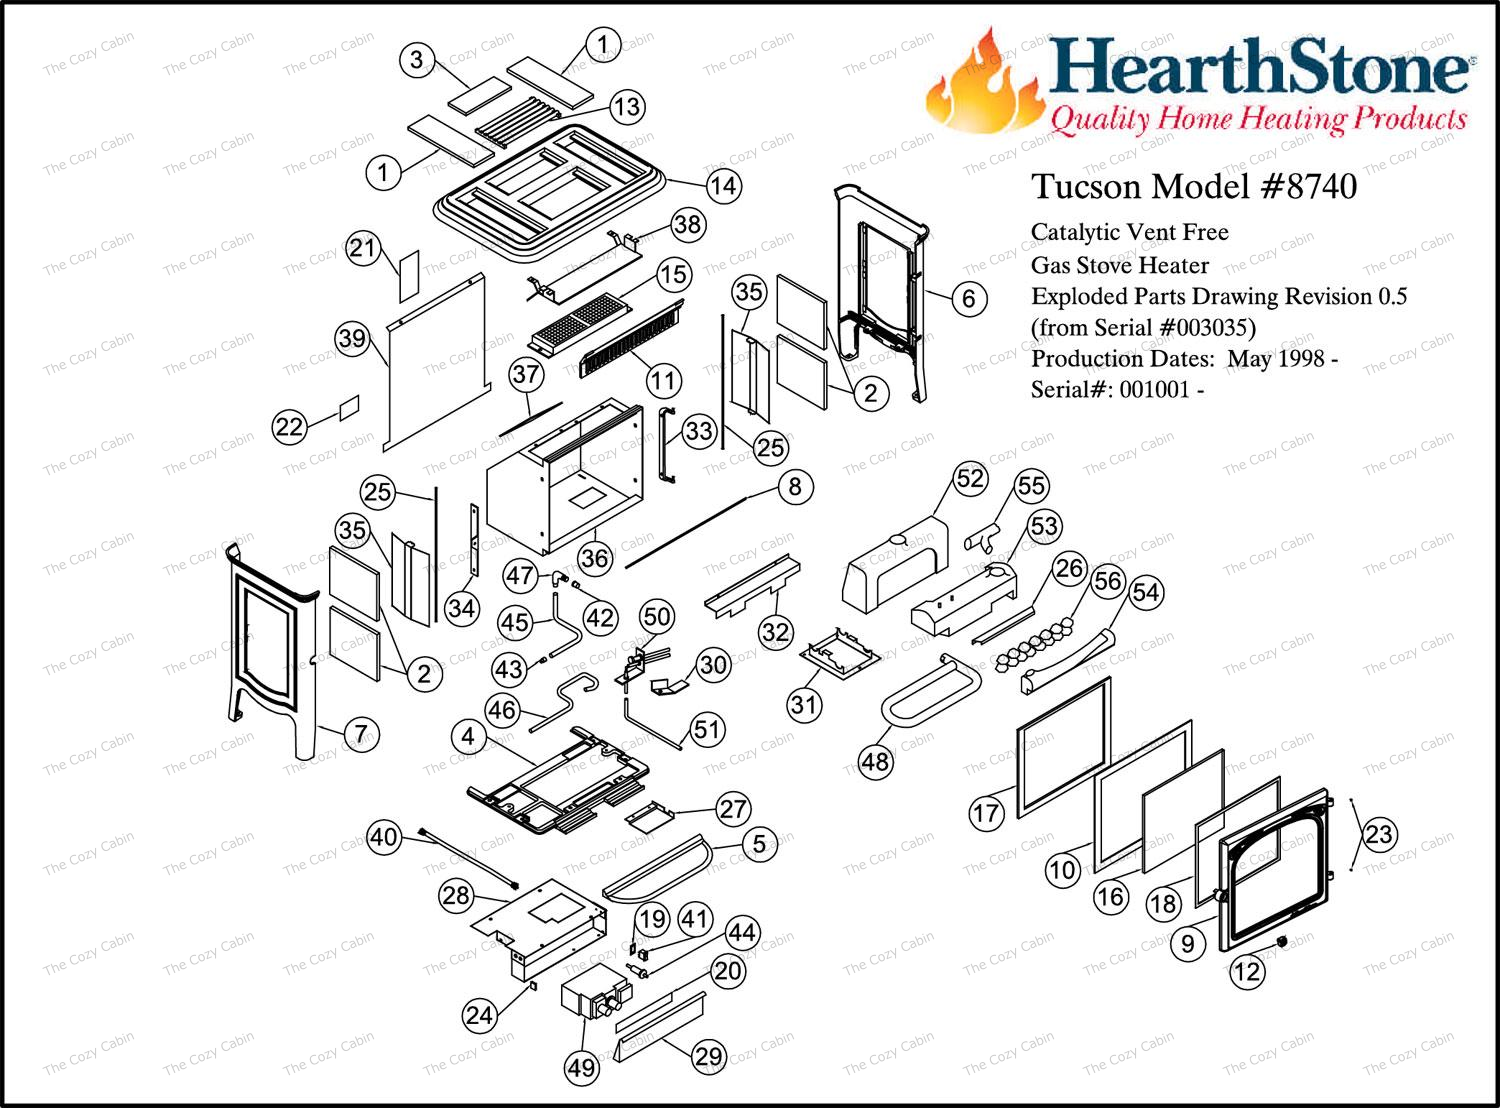 Tucson Vf Model 8740 Parts The Cozy Cabin Hearthstone Store Gas Wall Heater Wiring Diagrams